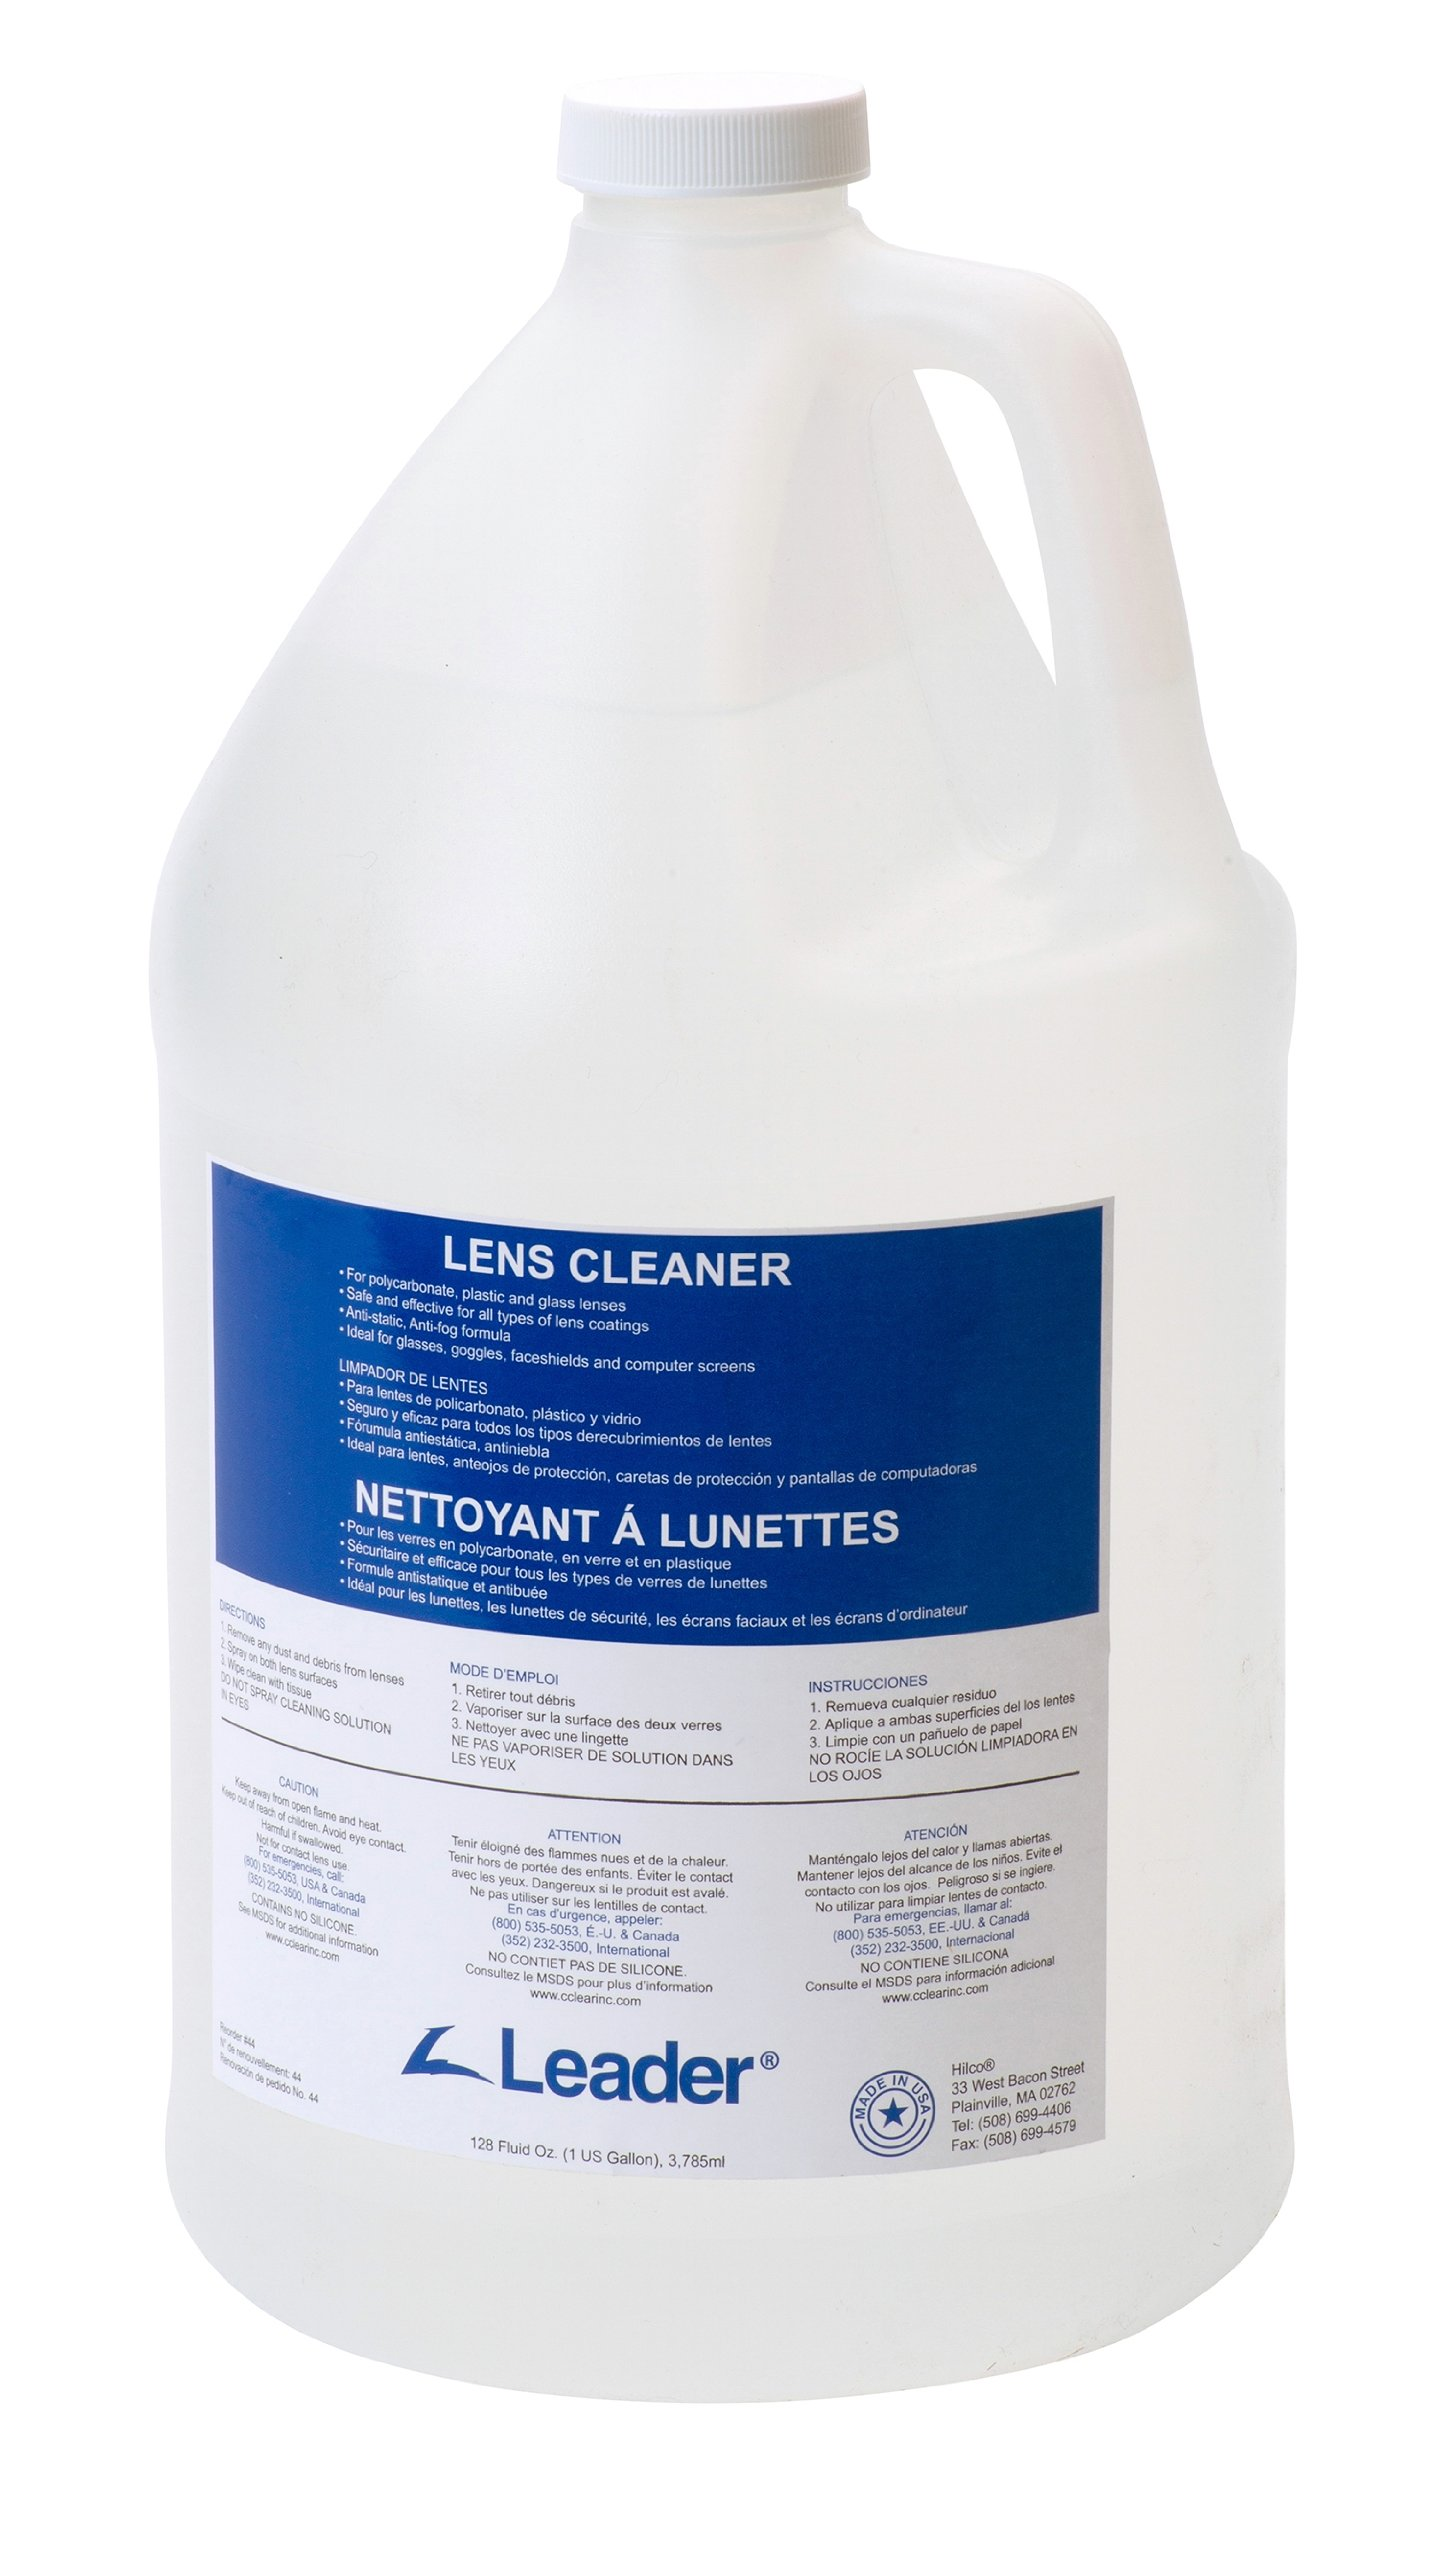 C-Clear 44 Lens Cleaning Cleaner Solution, 1 Gallon Capacity by Leader